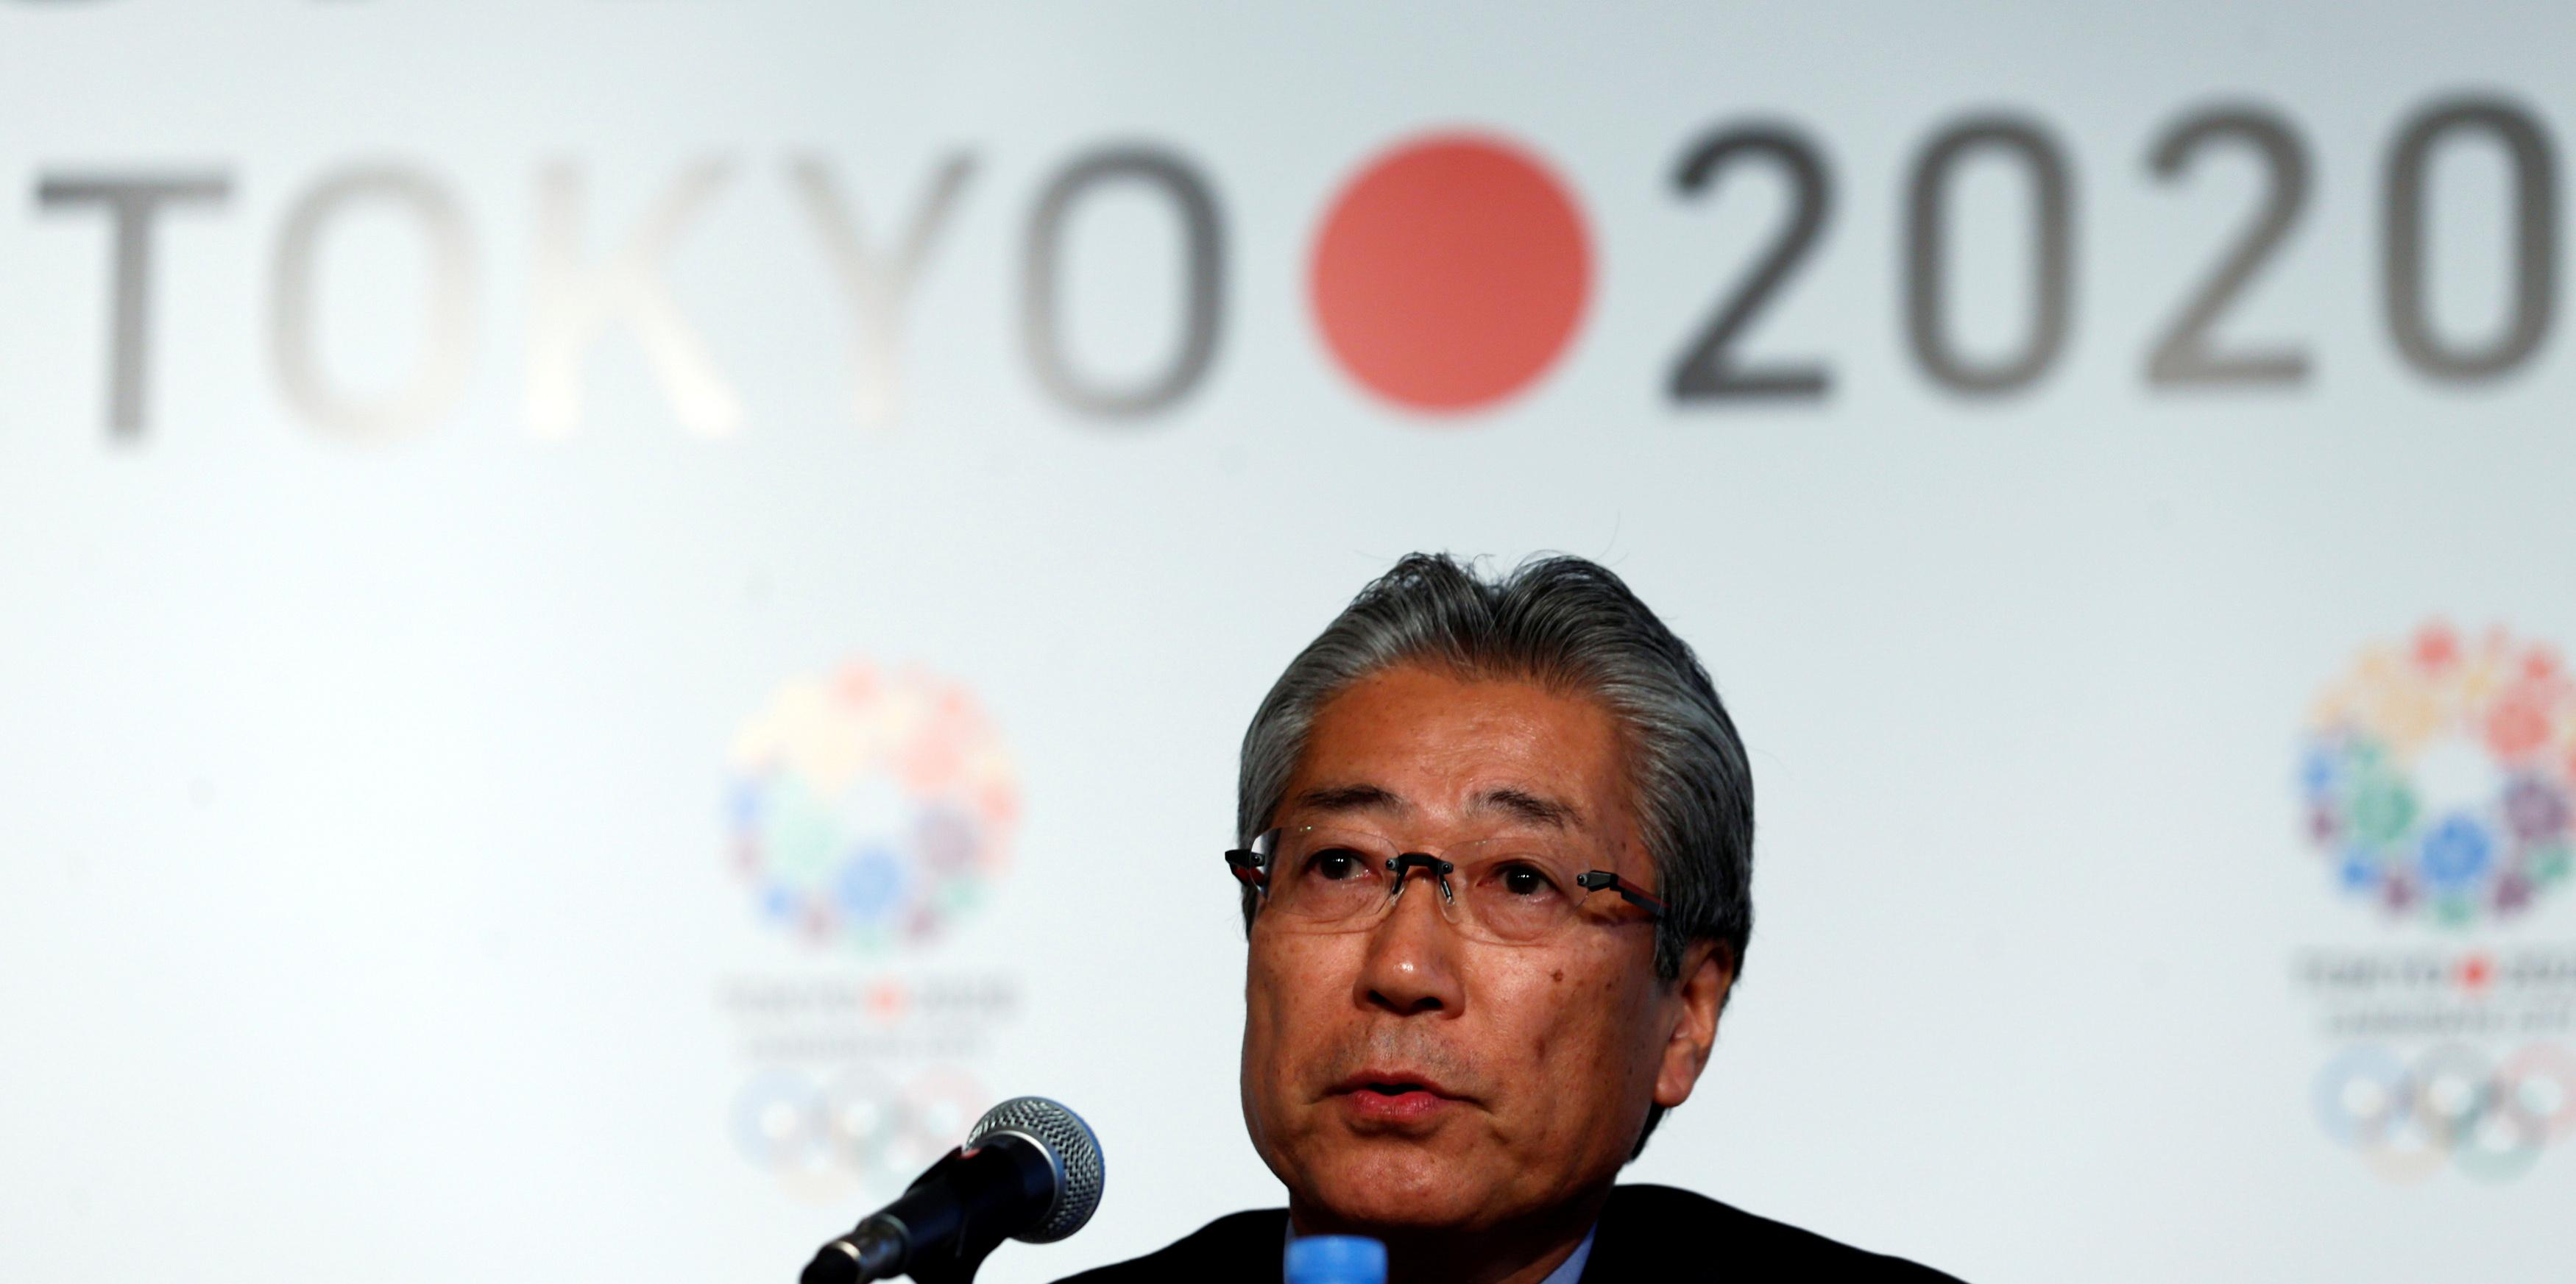 IOC opens ethics file on Takeda, to meet Friday